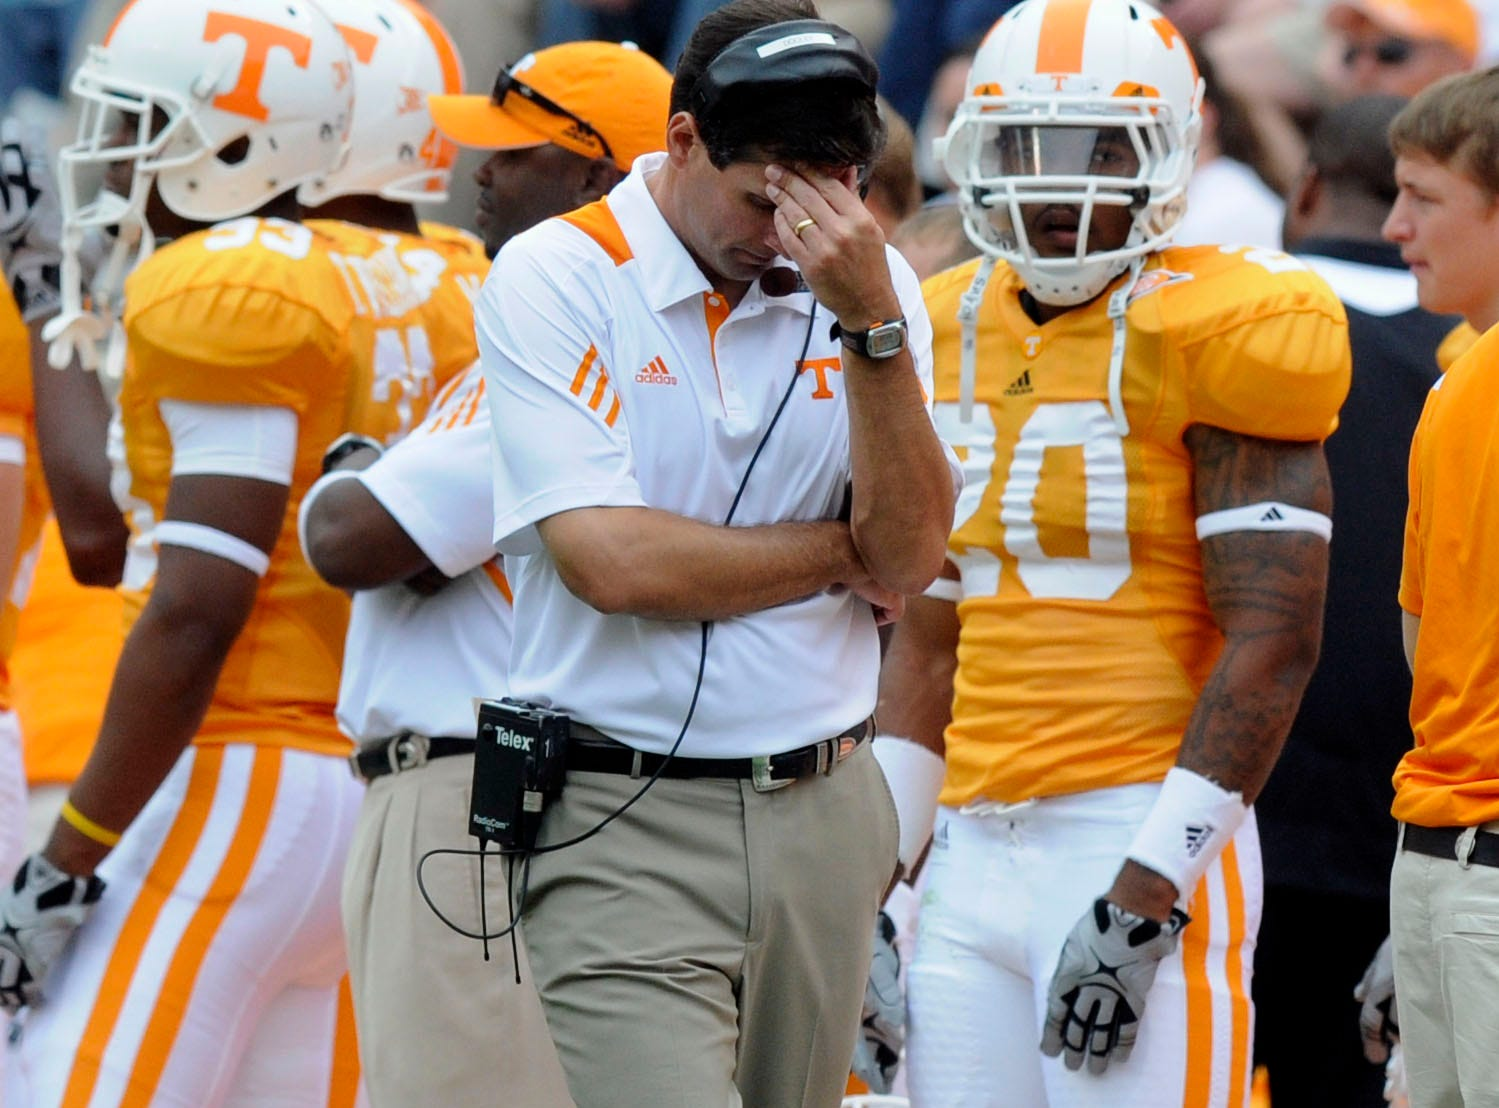 Tennessee head coach Derek Dooley was not happy with his team's performance Saturday, Sep. 25, 2010 in Neyland Stadium in Knoxville. Tennessee won 32-29 in second overtime.